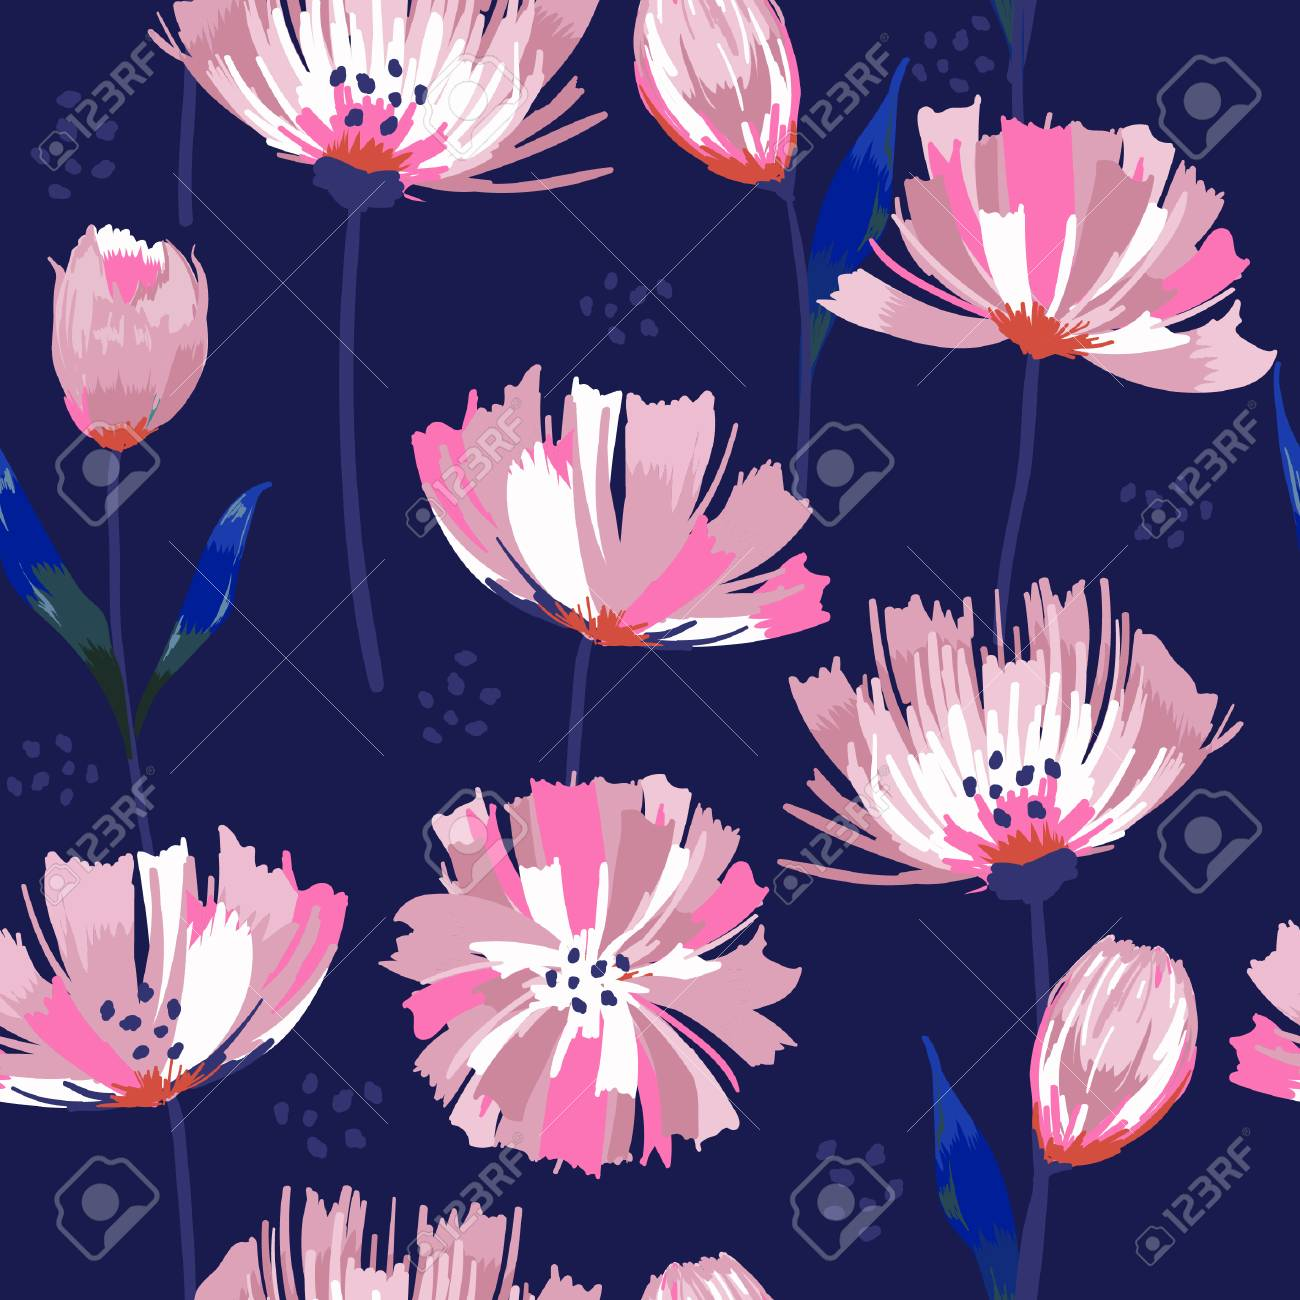 Painted Dark Blooming Garden Pink Flowers Seamless Vector Abstract